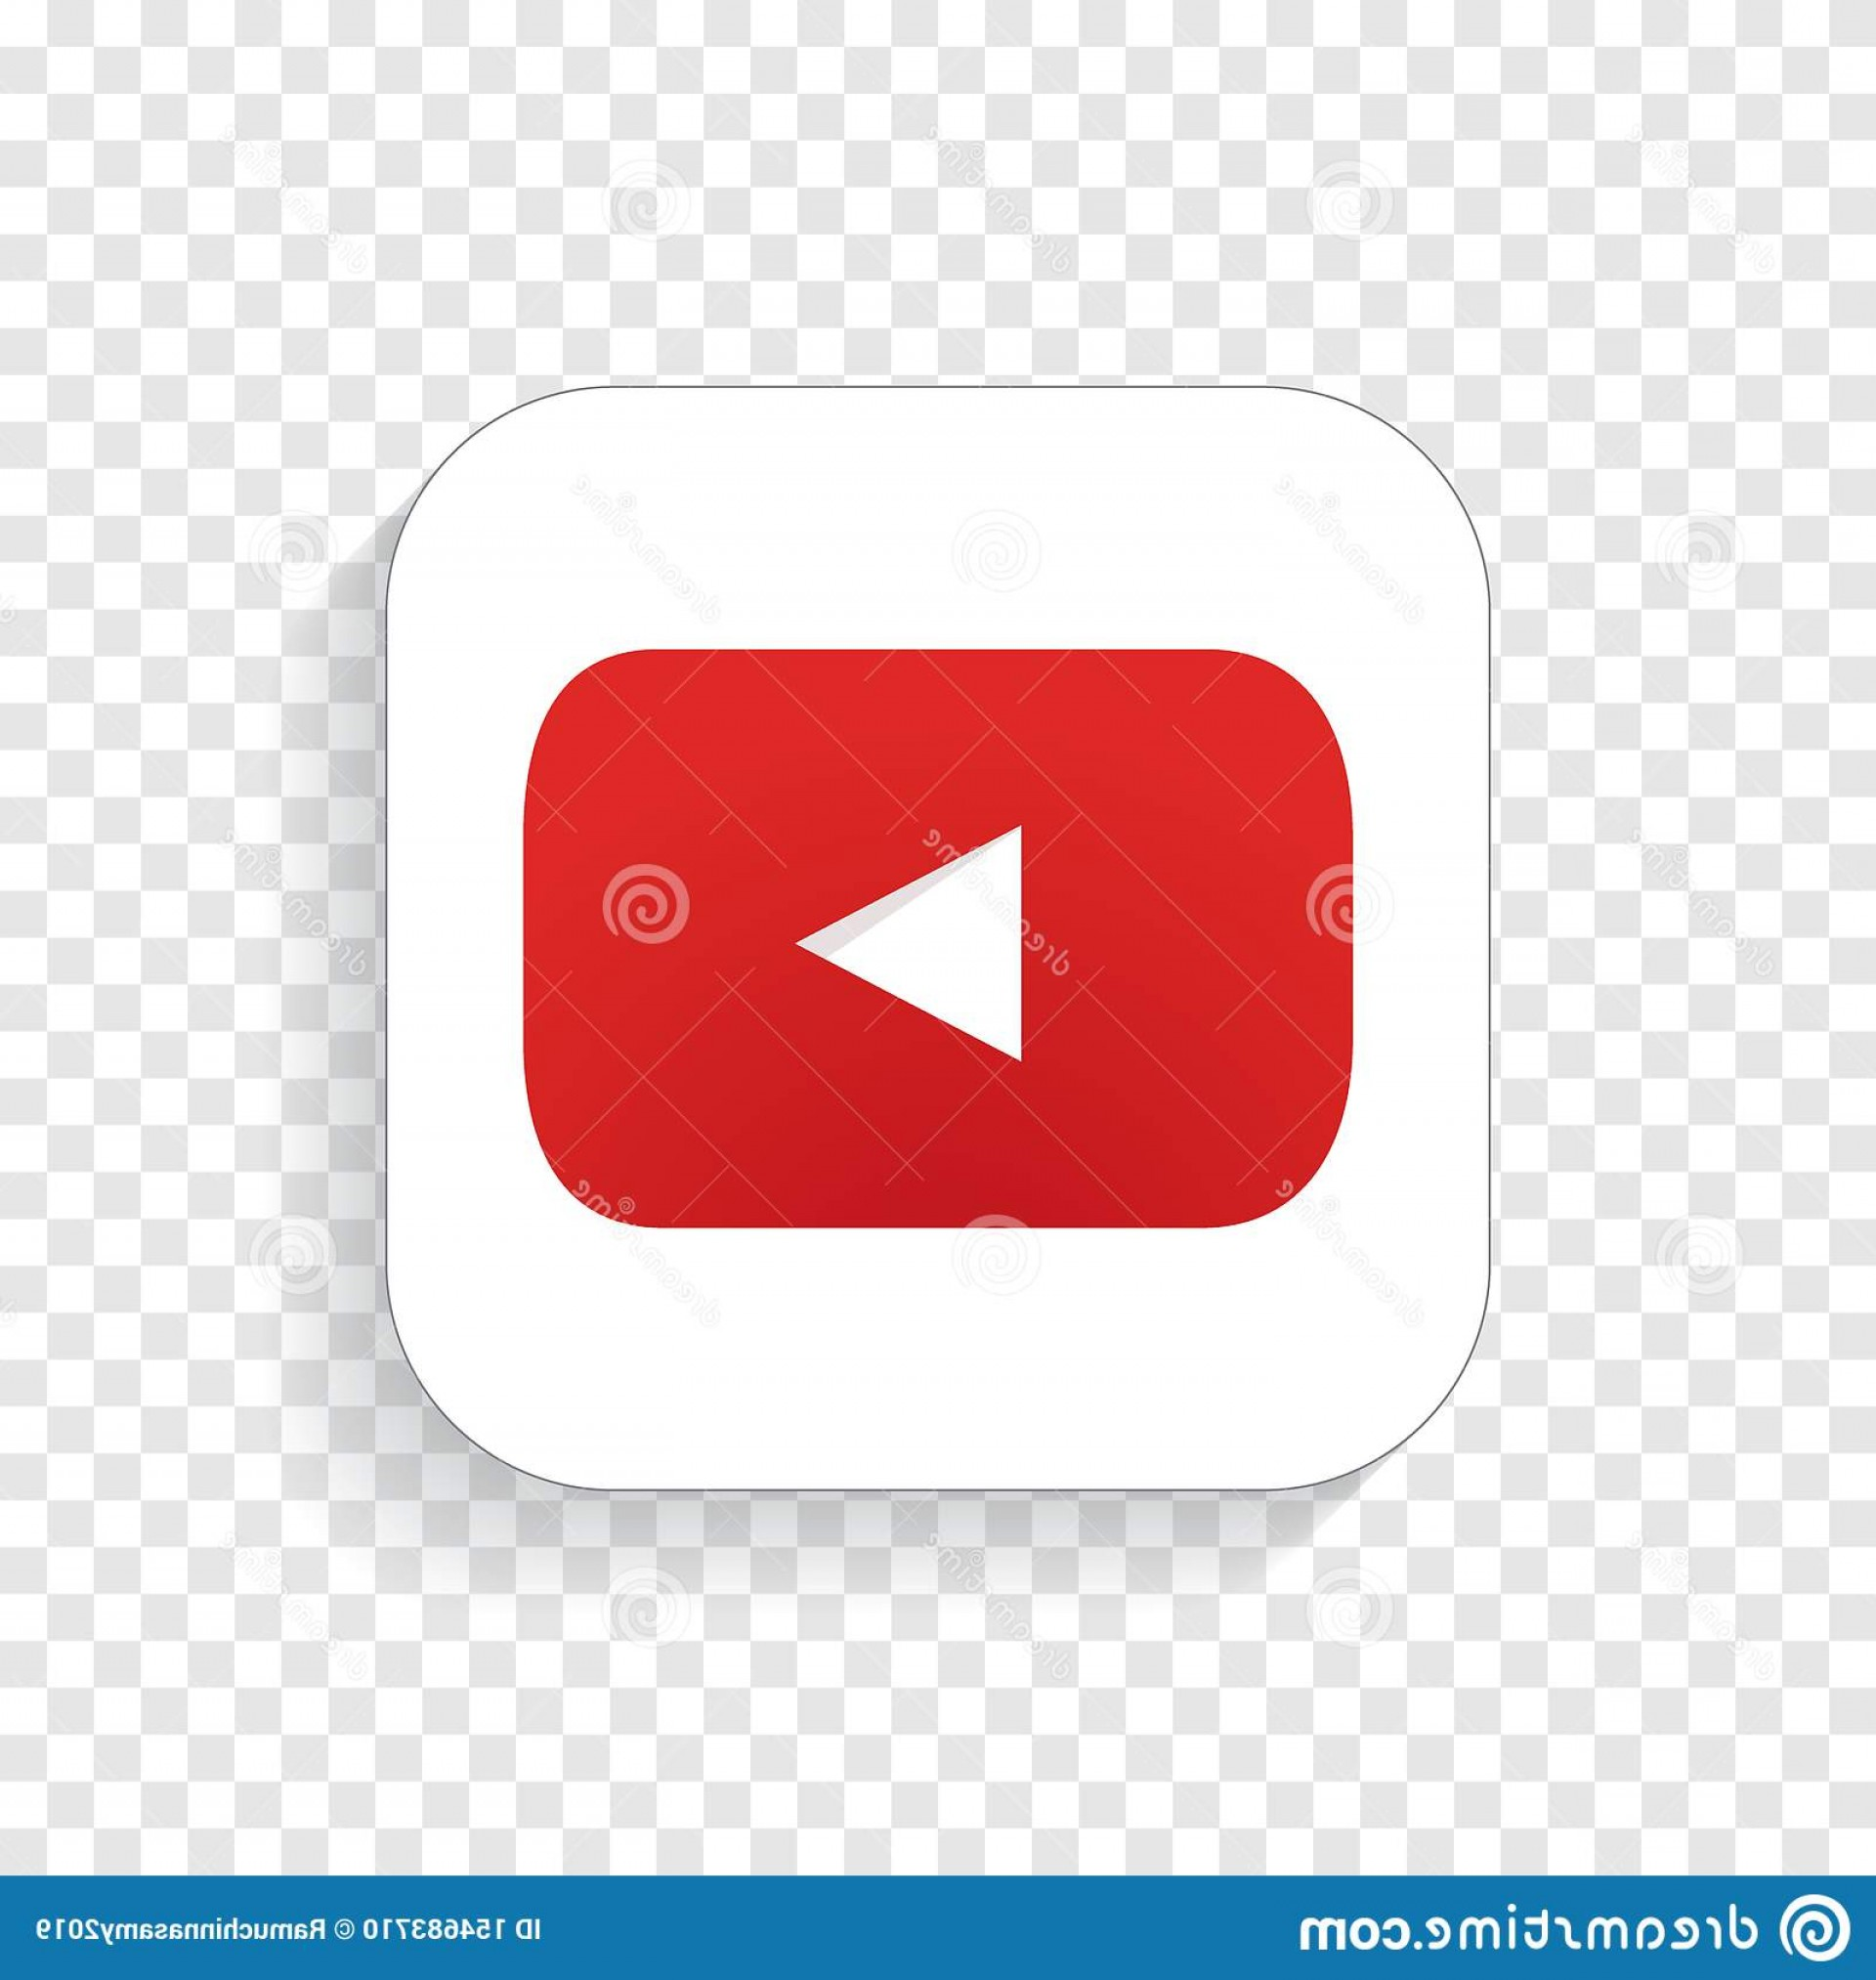 In Icon Stock Vector: Youtube Icon App Vector Transparent White Isolated Background Image